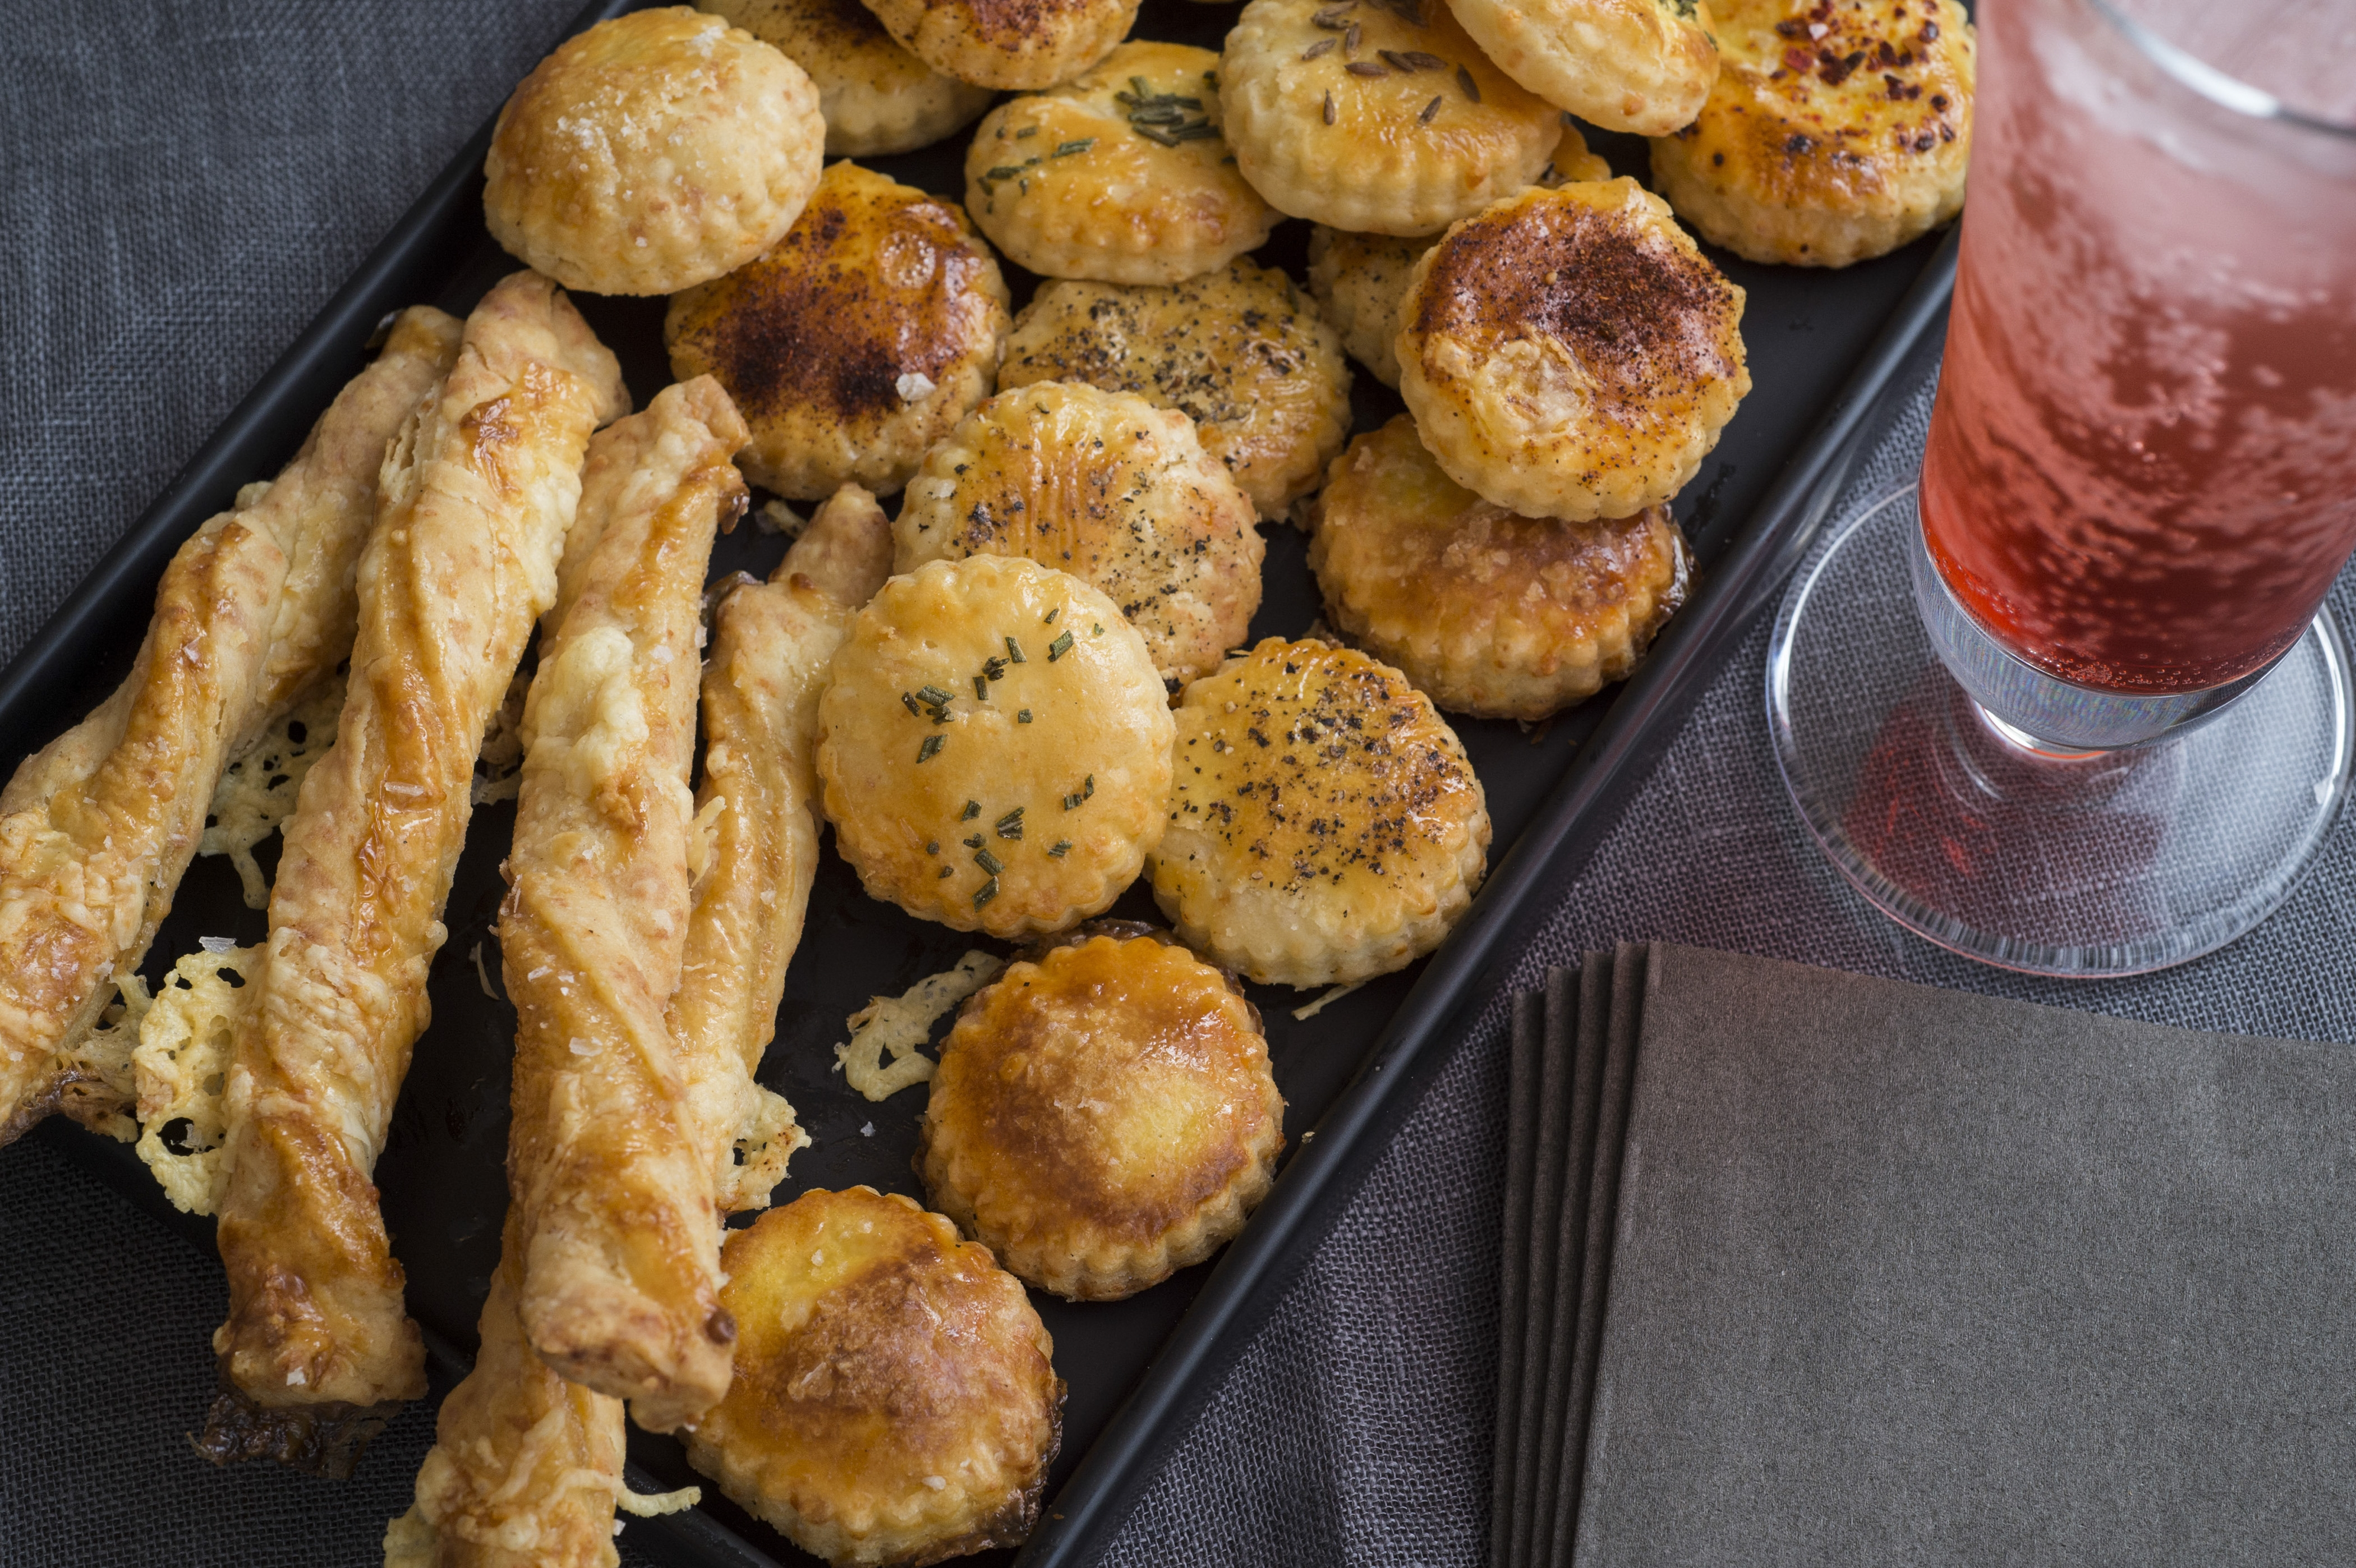 Cheese straws and cheese wafers are easy to prepare as a crispy and salty snack that's sure to please the cocktail crowd.